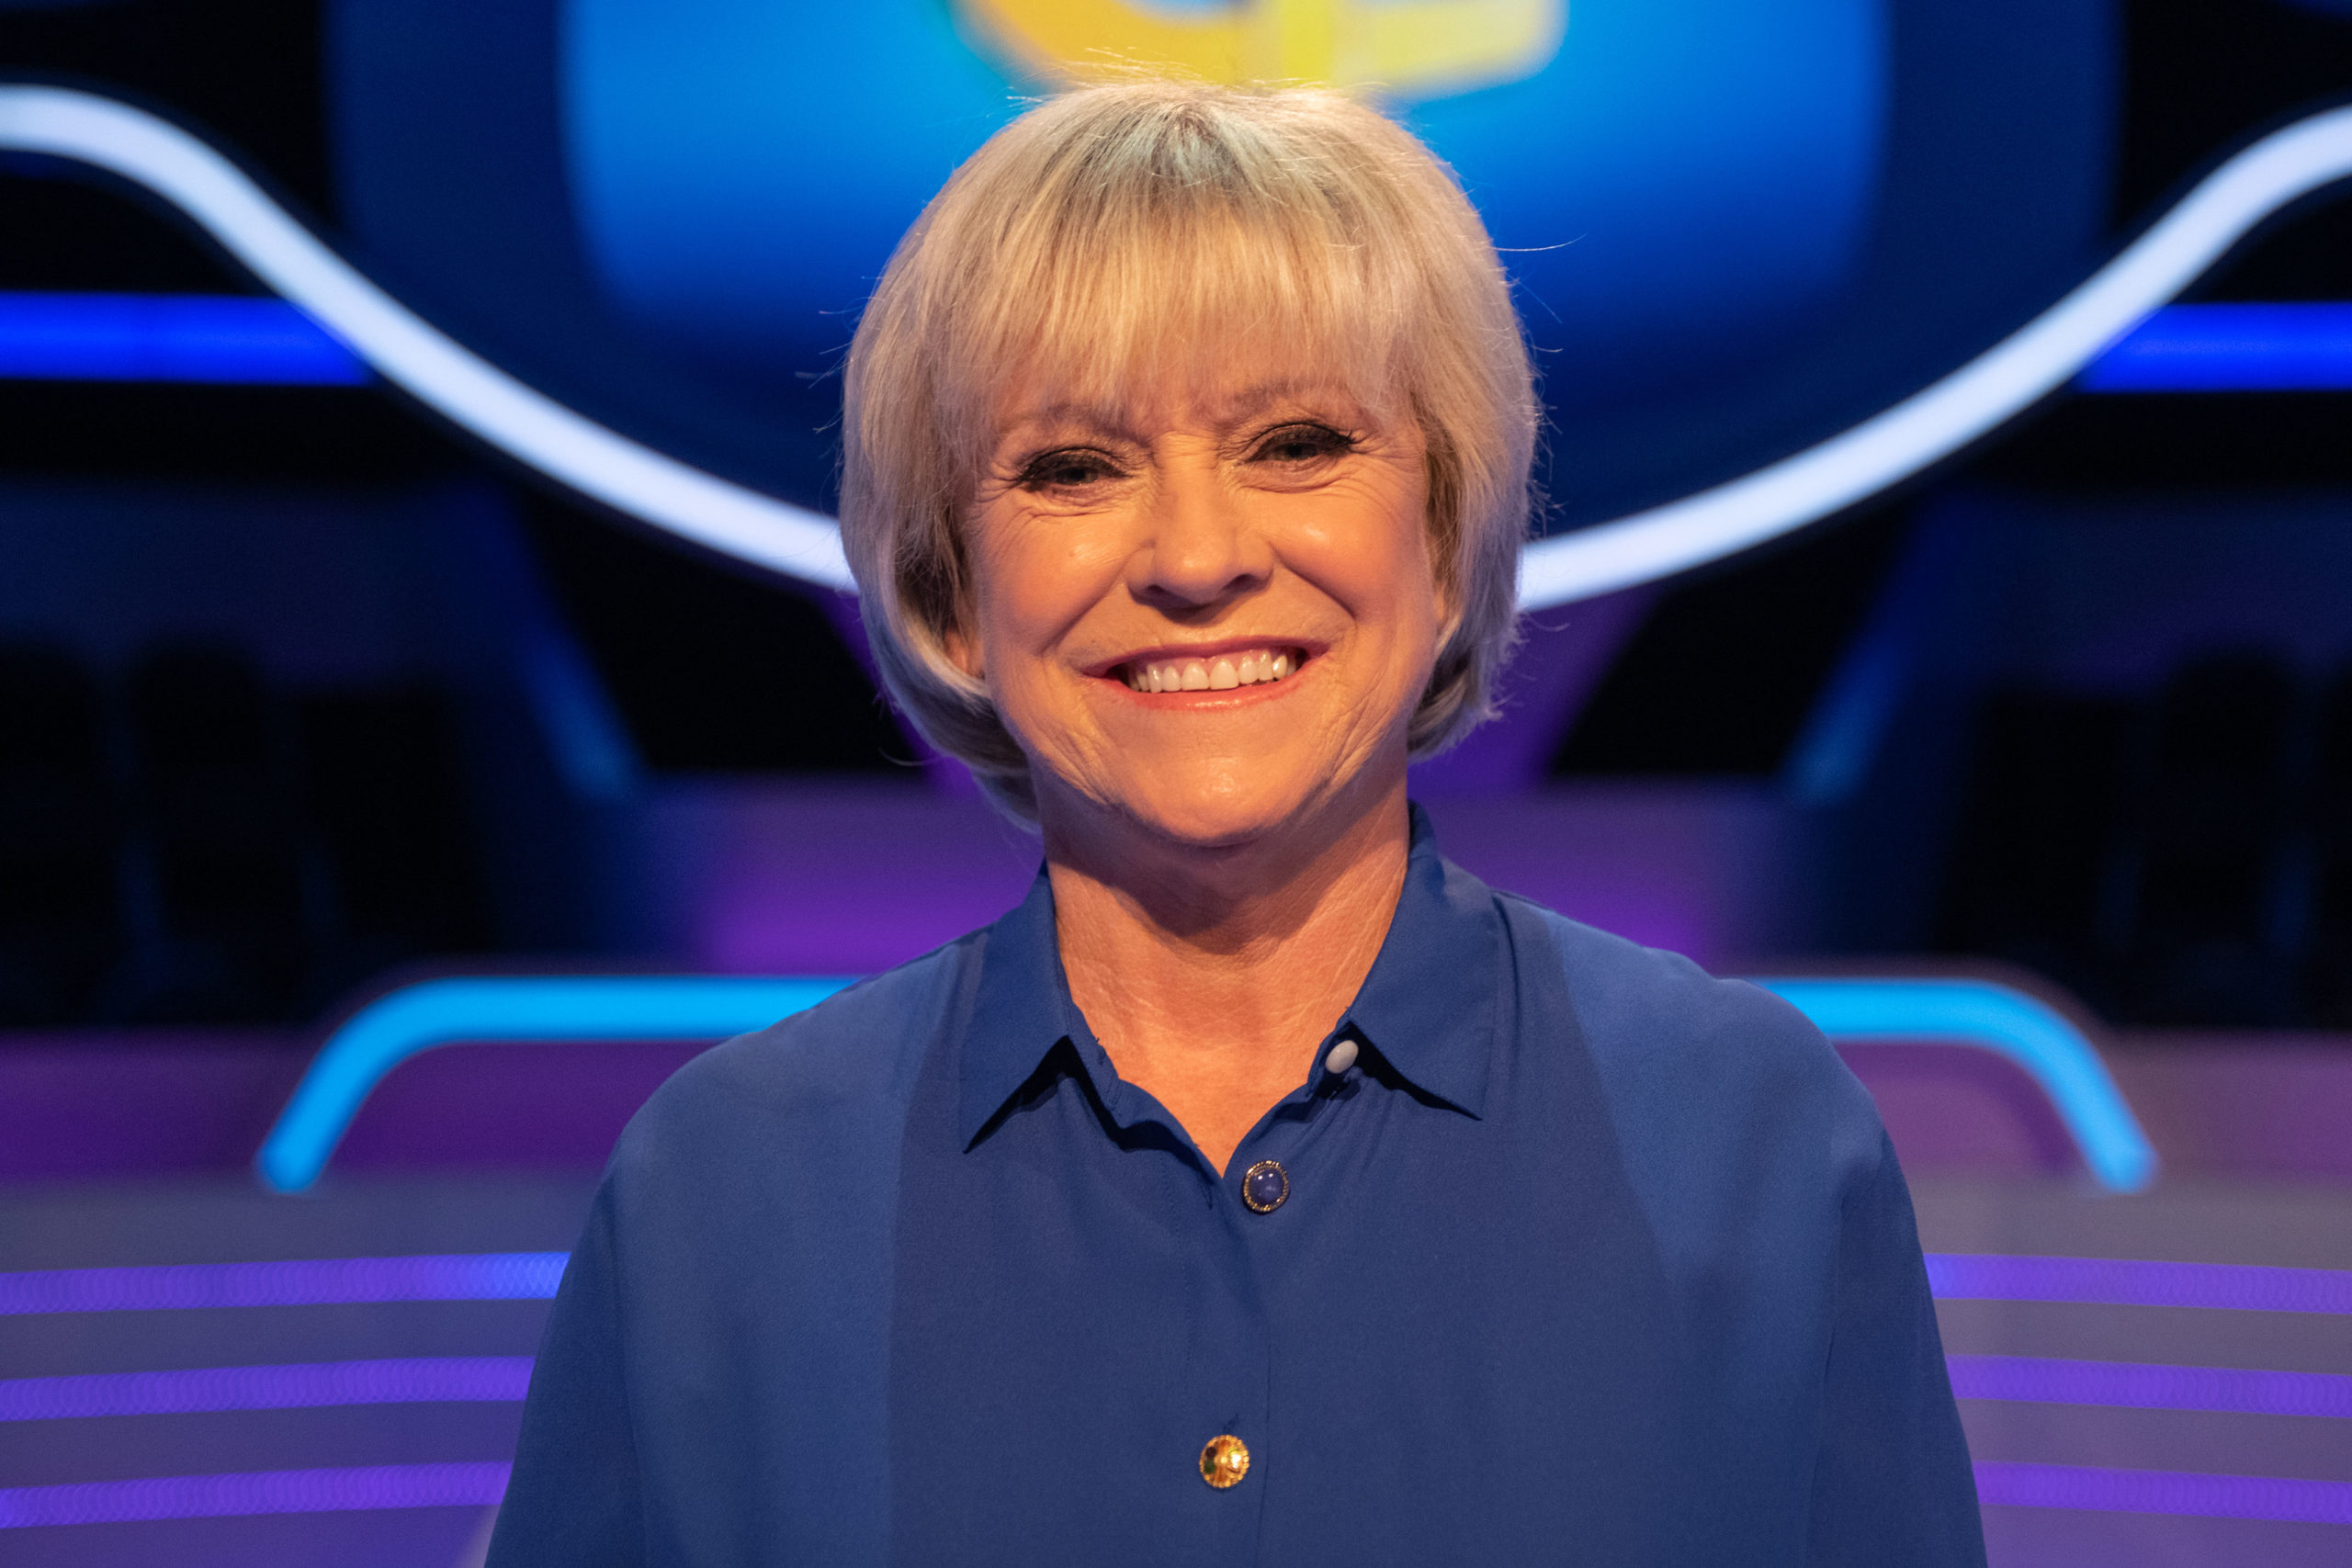 Sue Barker presents A Question of Sport